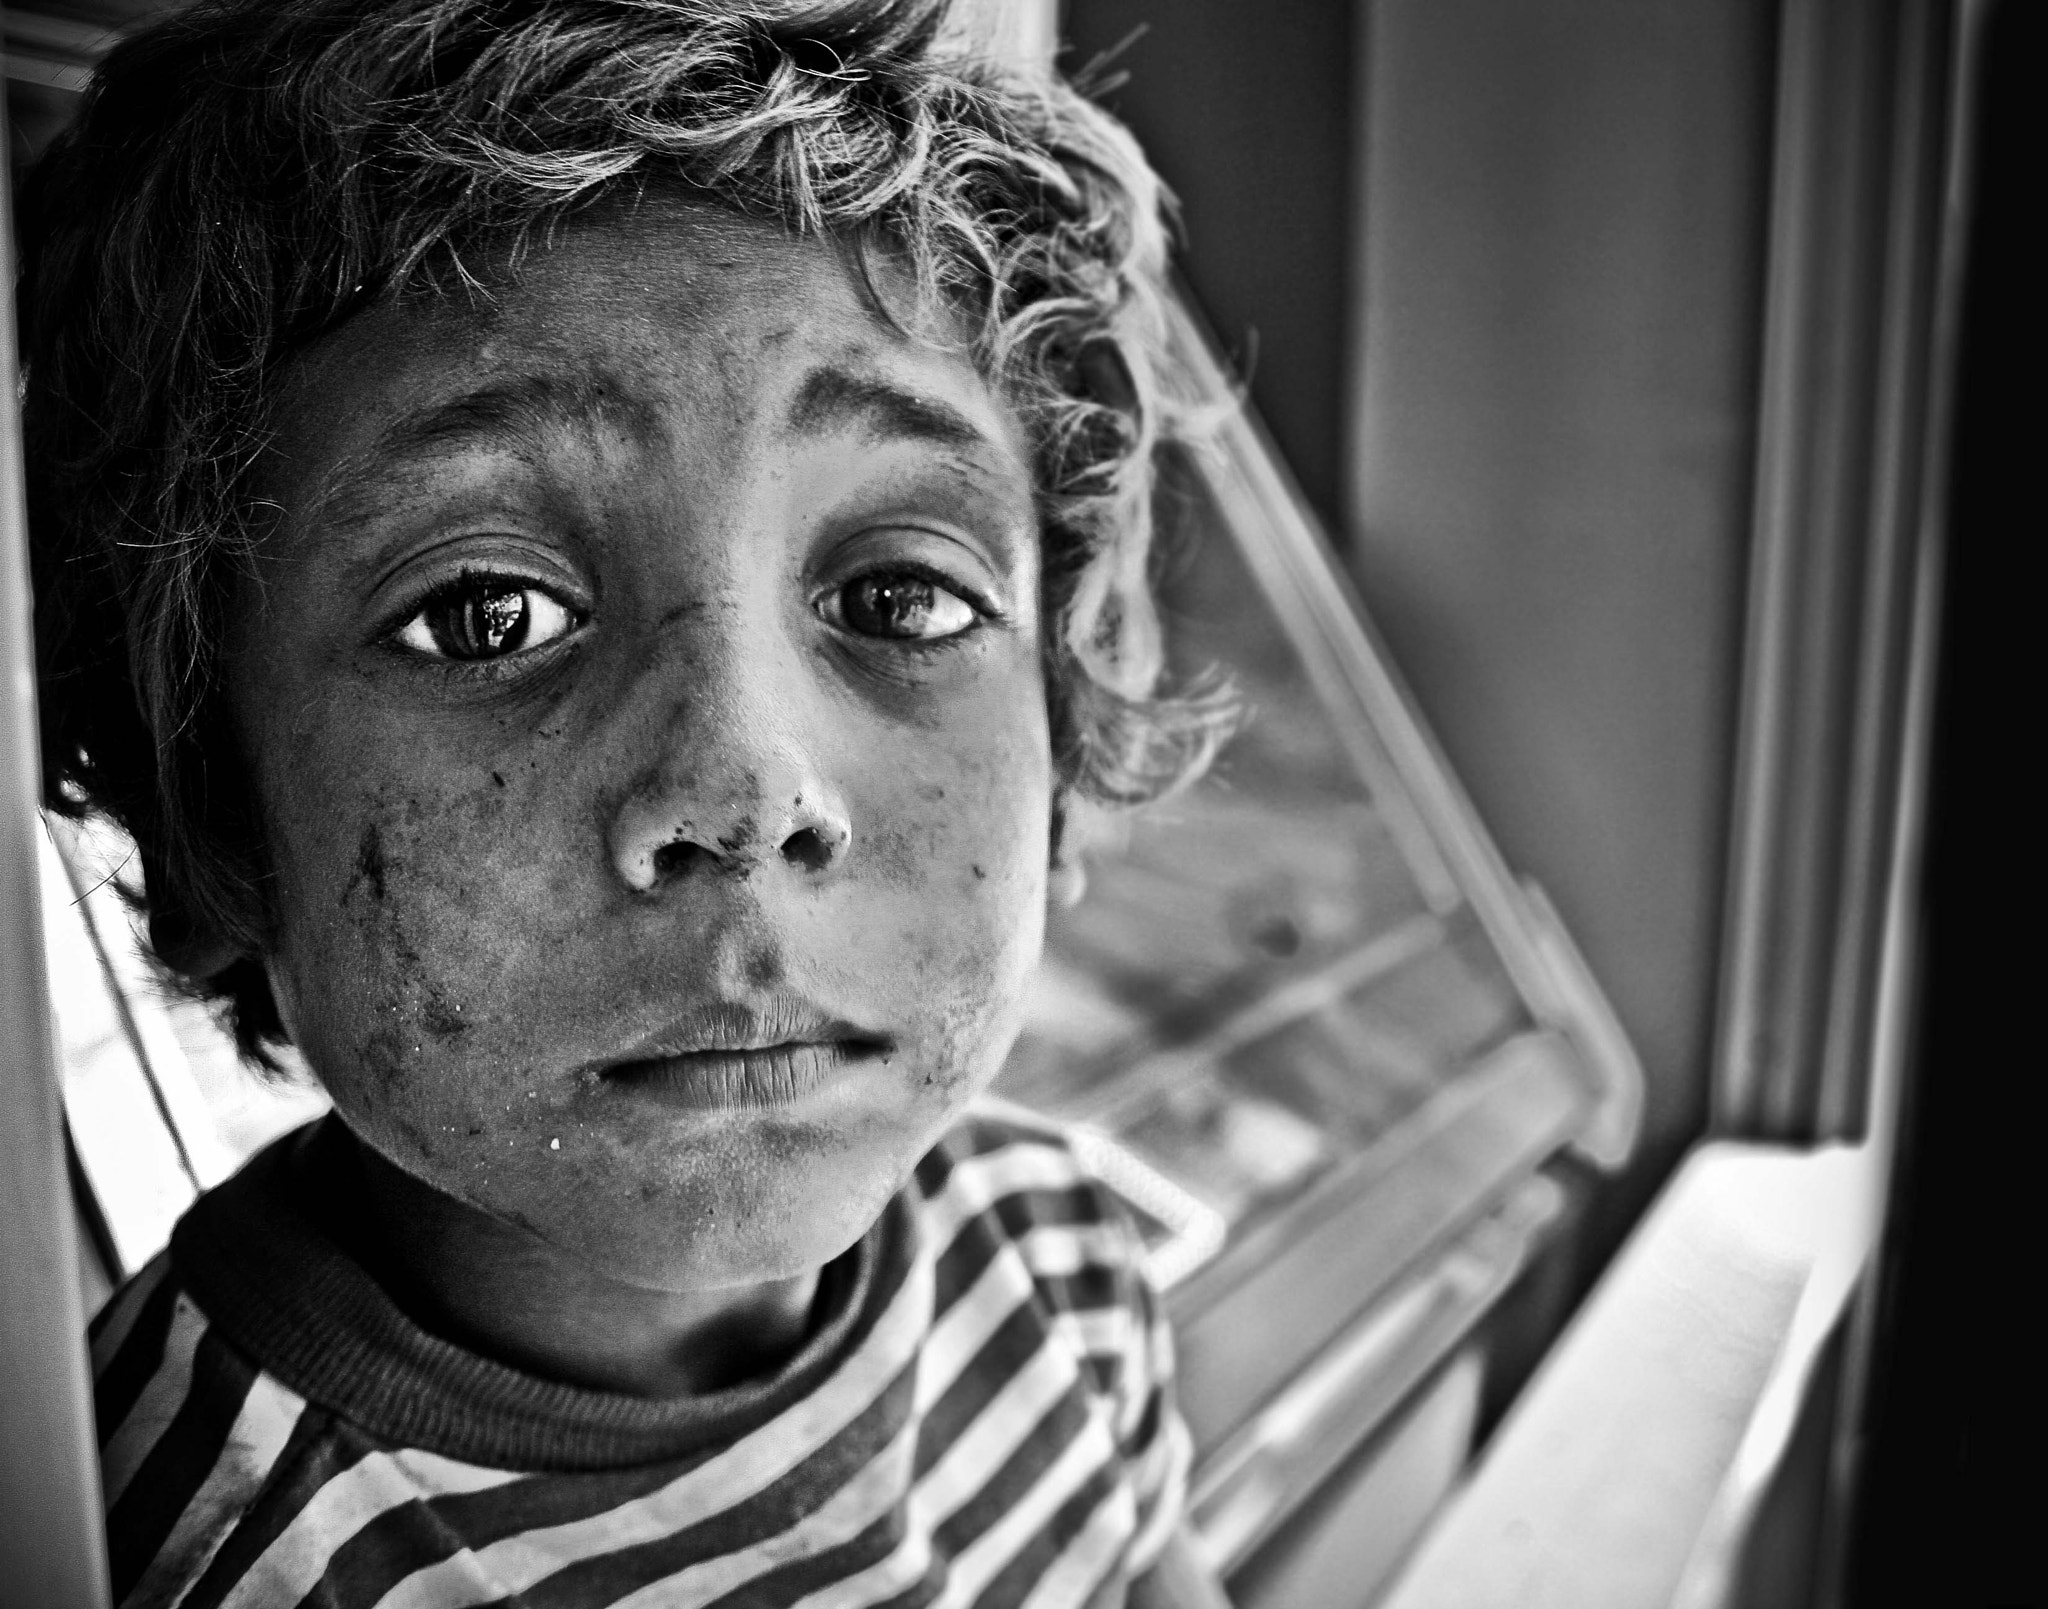 Photograph Kid on the streets by Domitilla Modesti on 500px